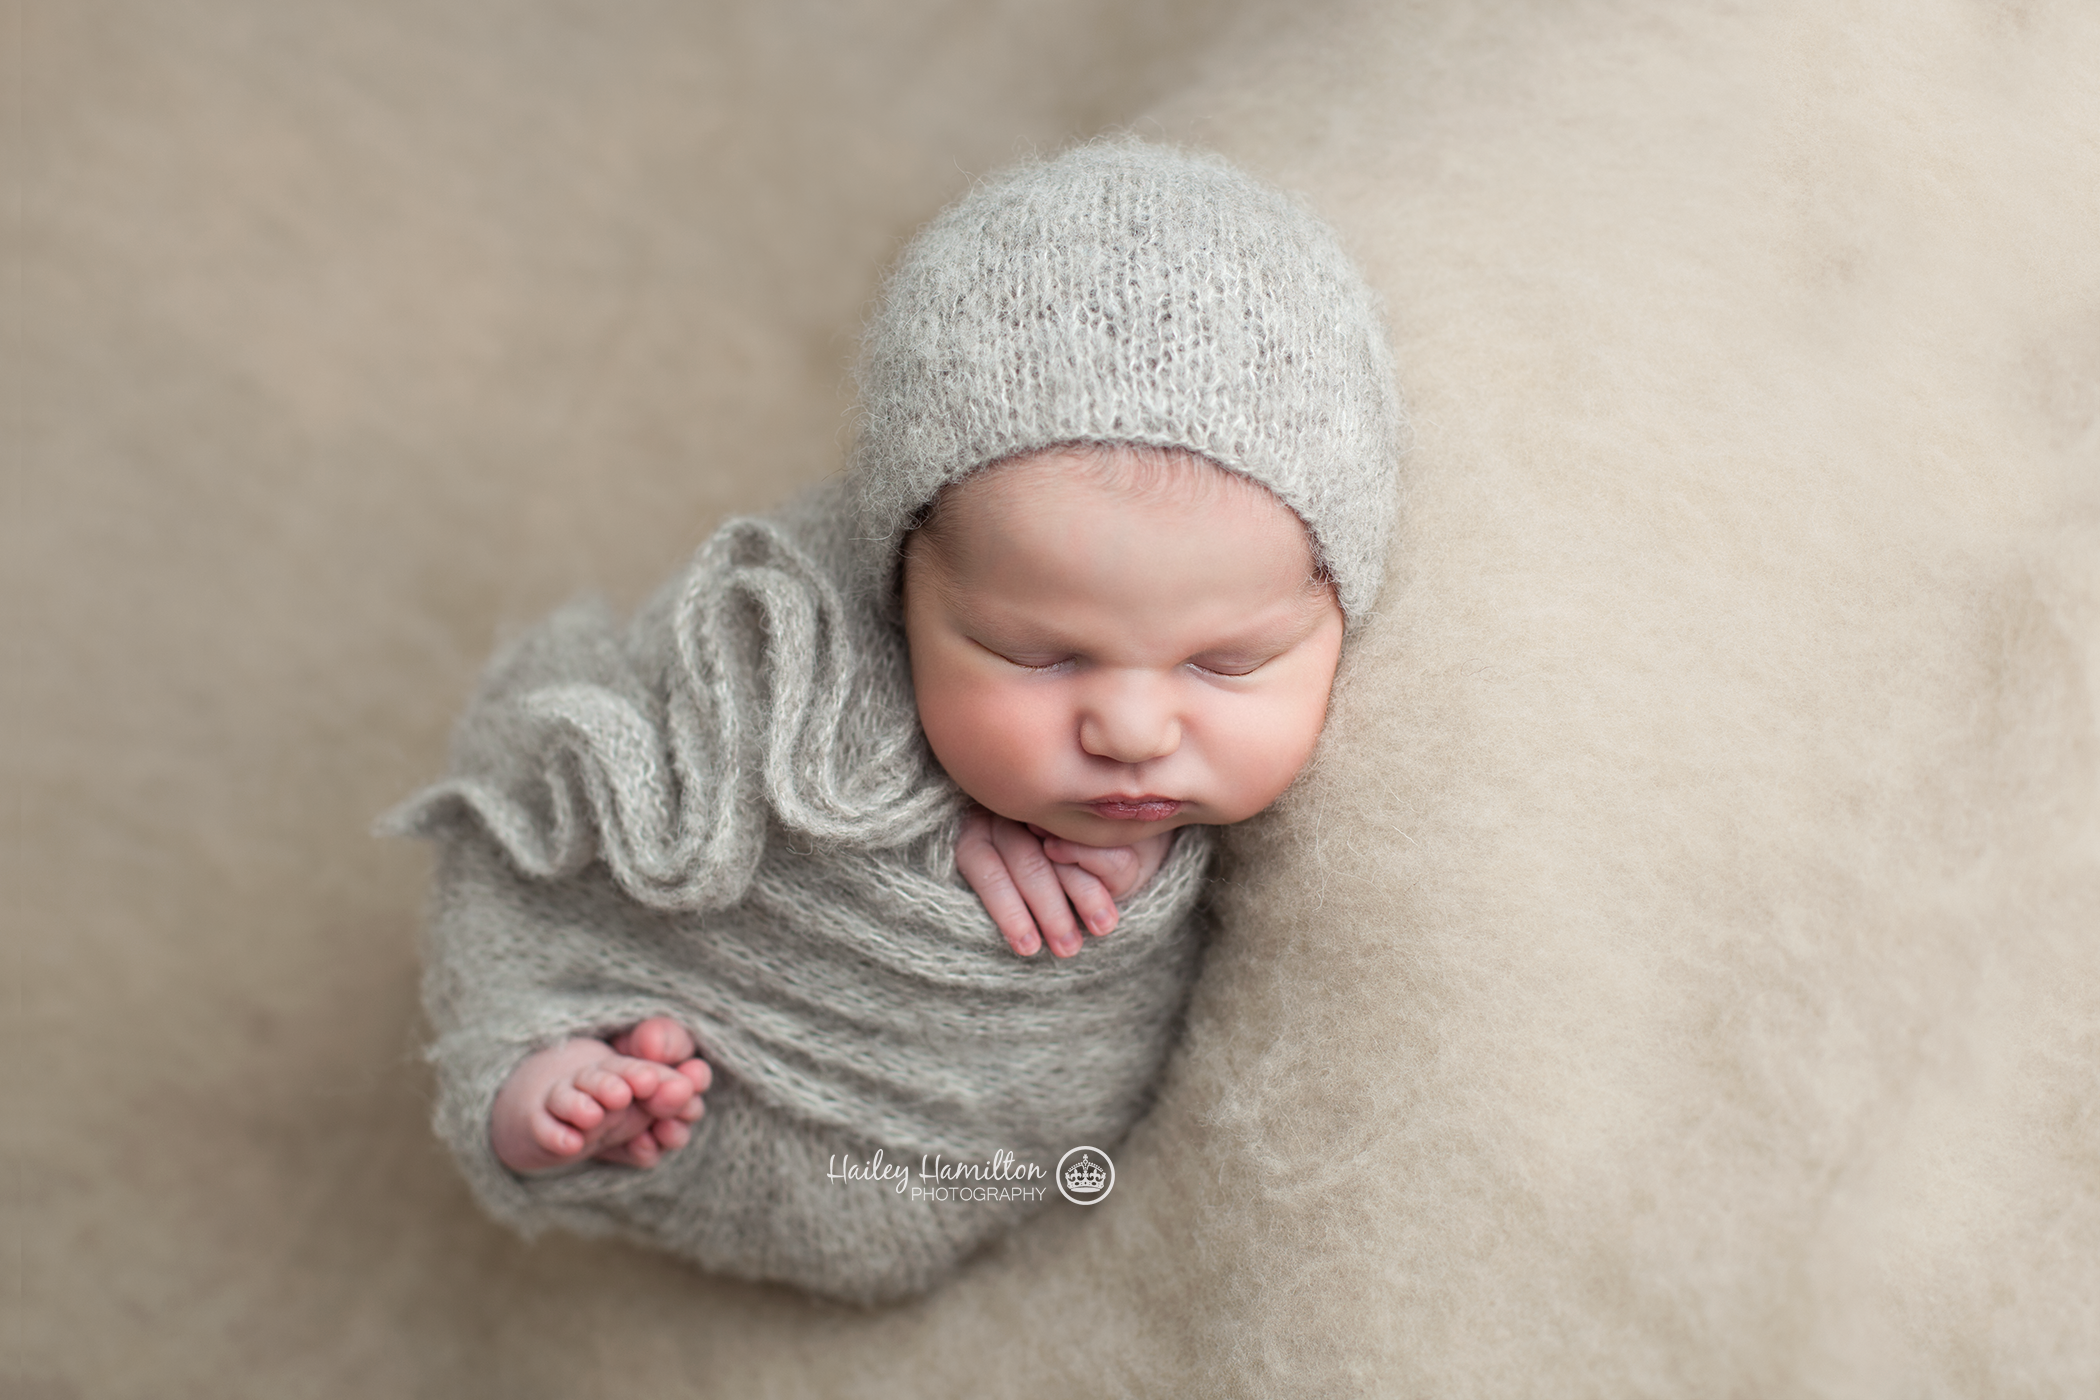 Wrapped Newborn with toes showing